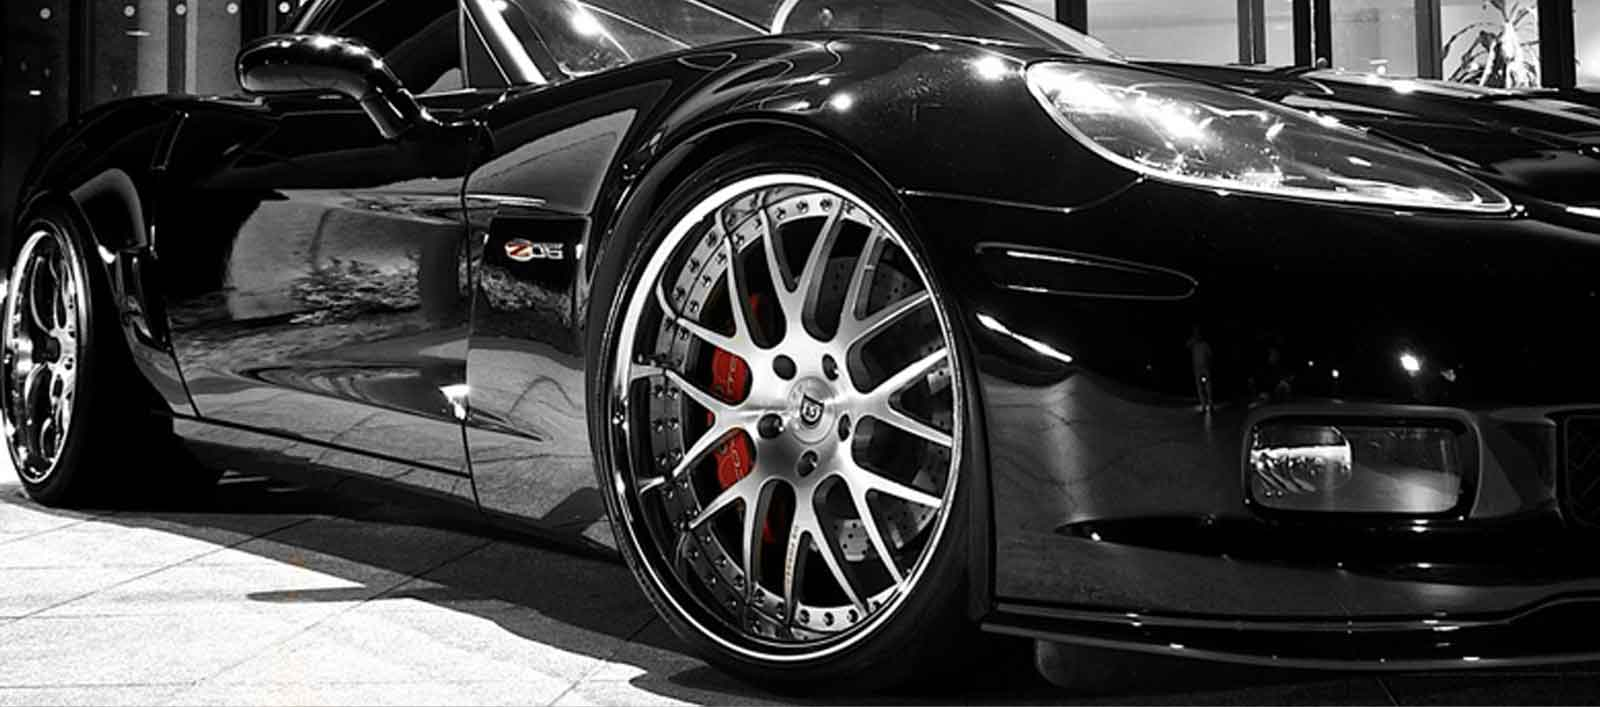 Wheels, Rim & Tire Brands, Designer Wheel Manufacturers ...